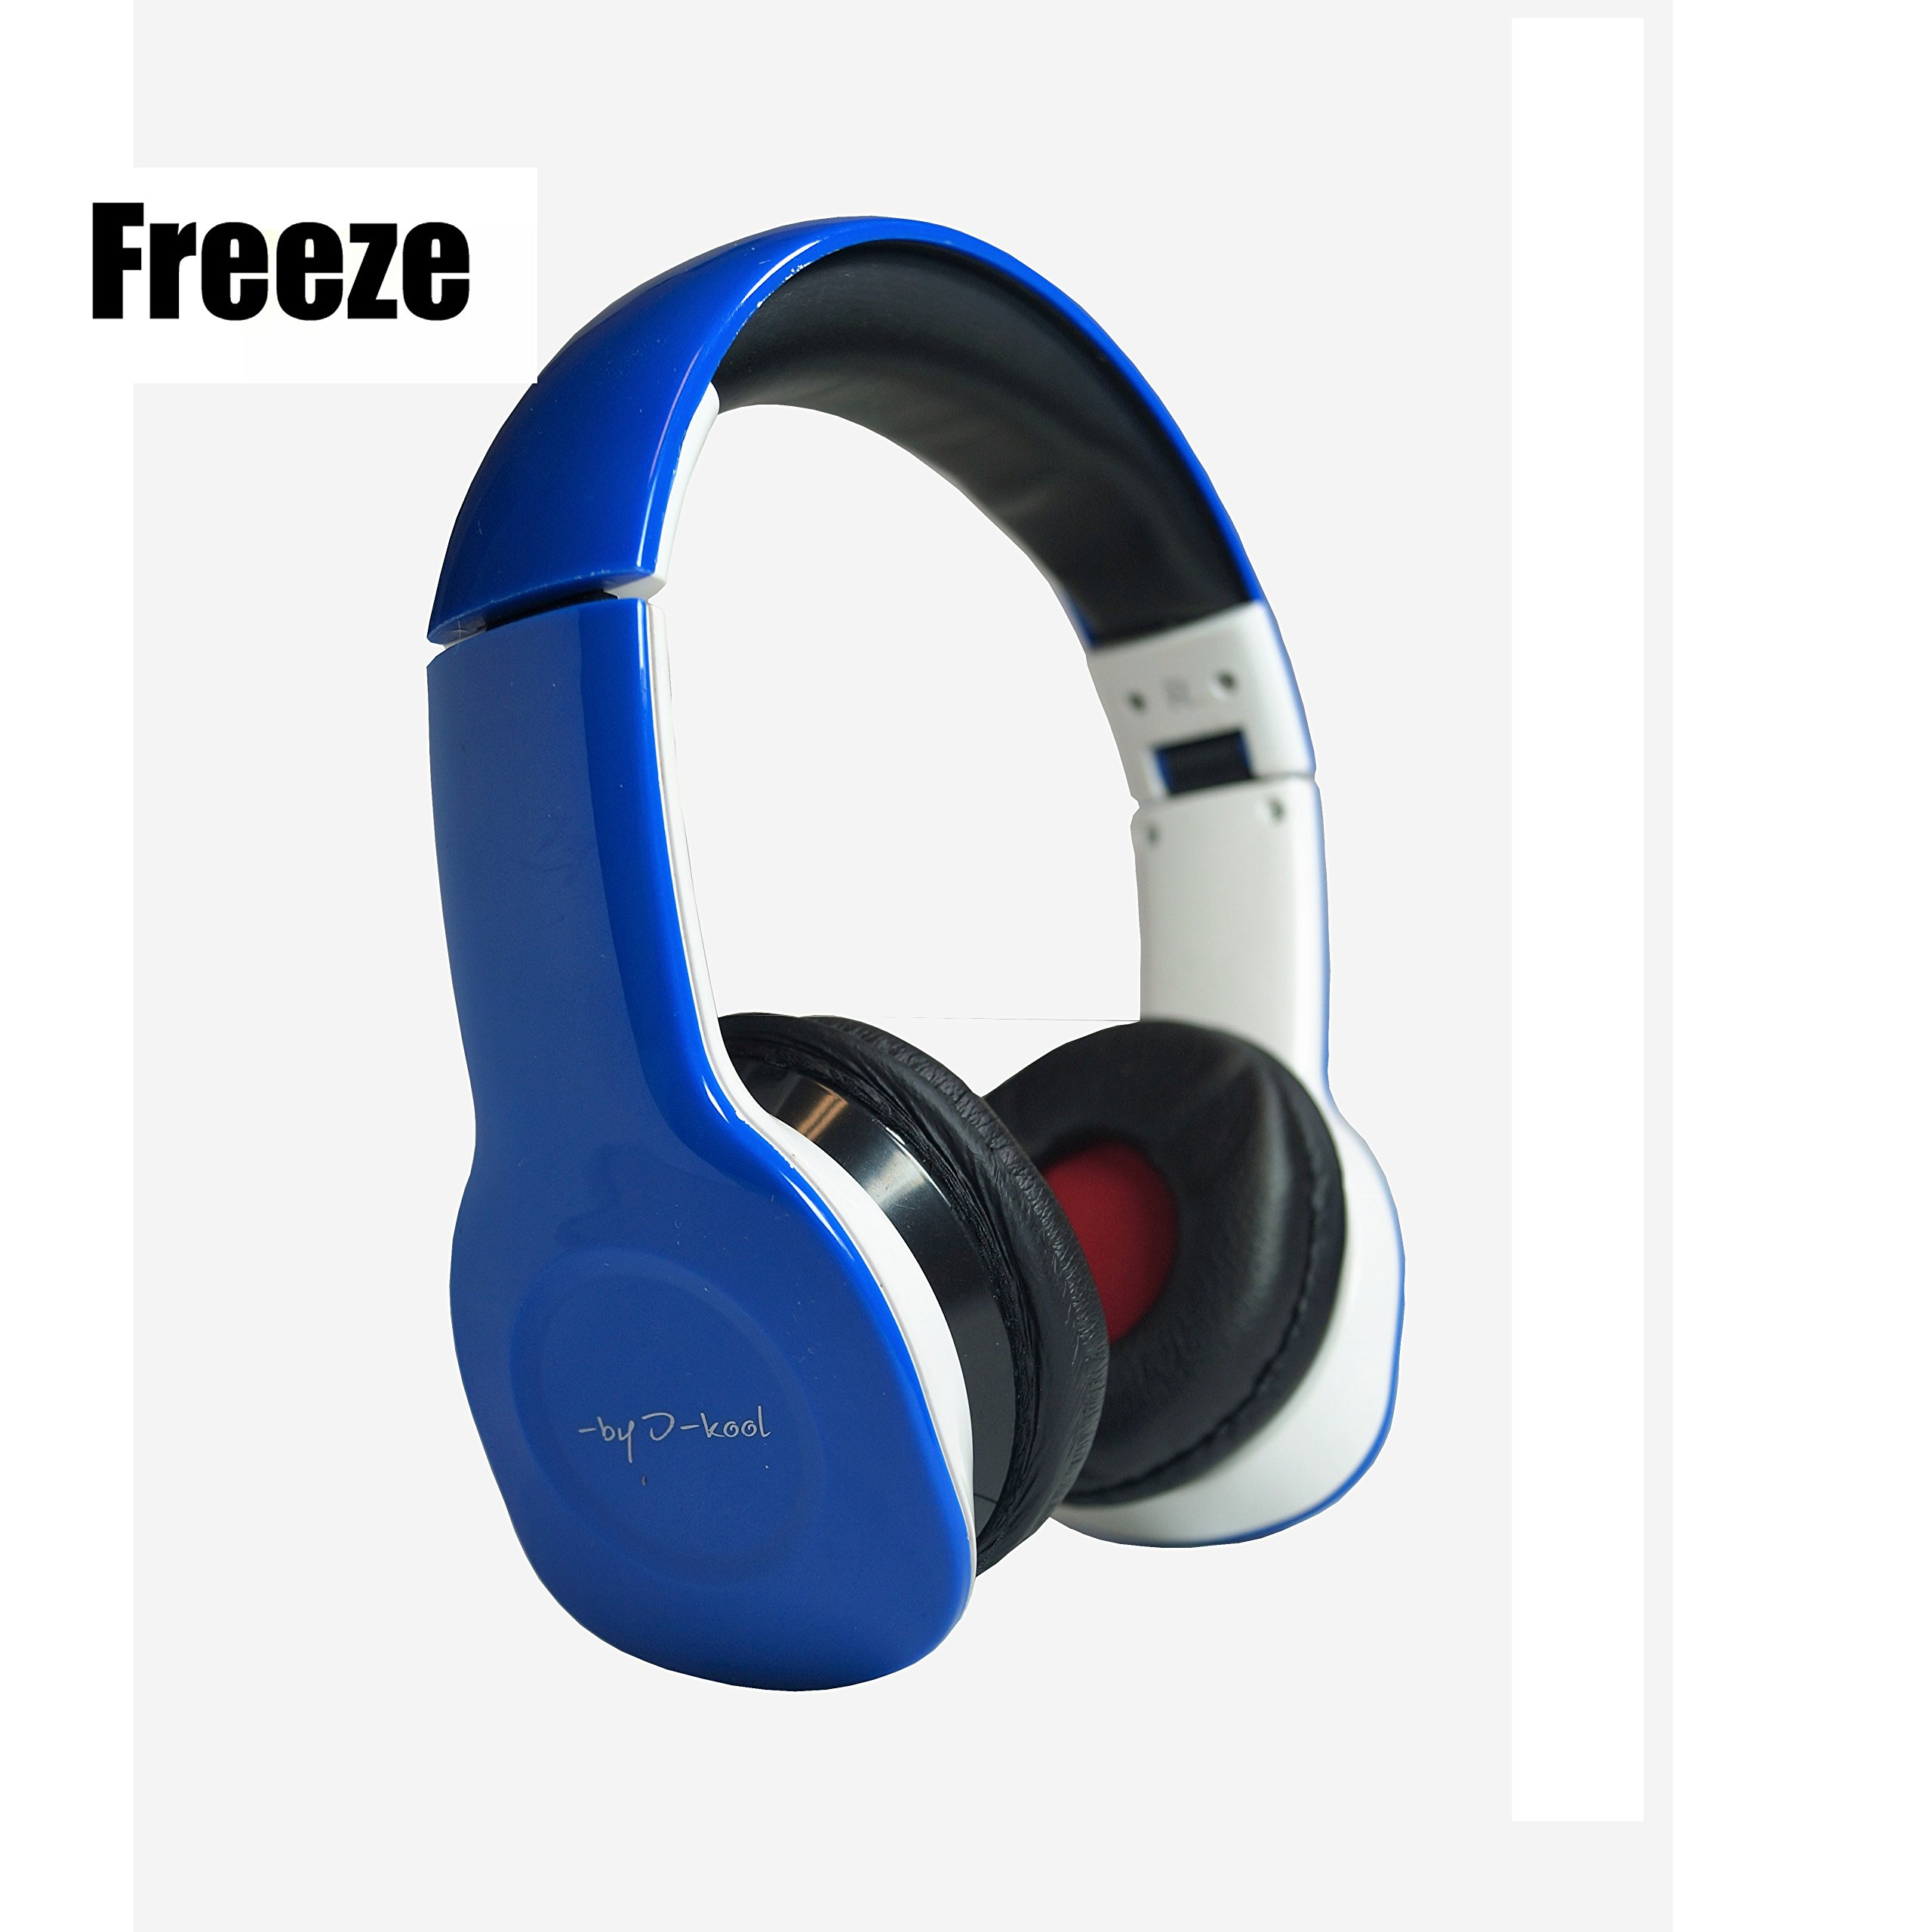 Auriculares Freeze X-treme I-kool Freeze series con Bass Boost Fully fold-able para easy Viaje Detached Aux cable includ